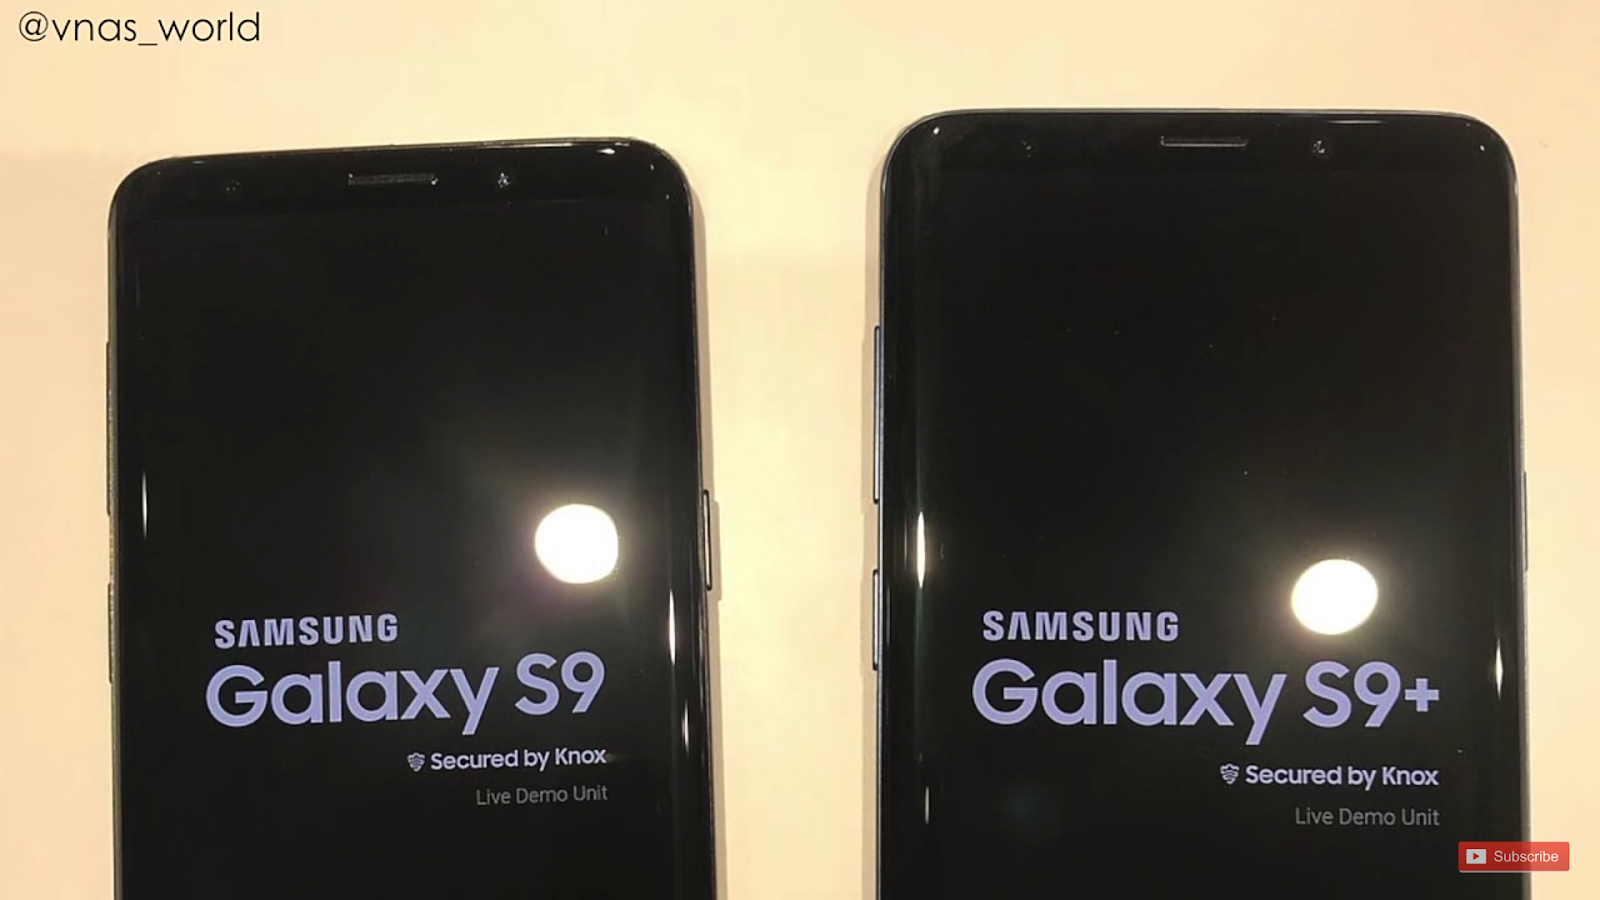 Samsung galaxy s9/s9+ front view